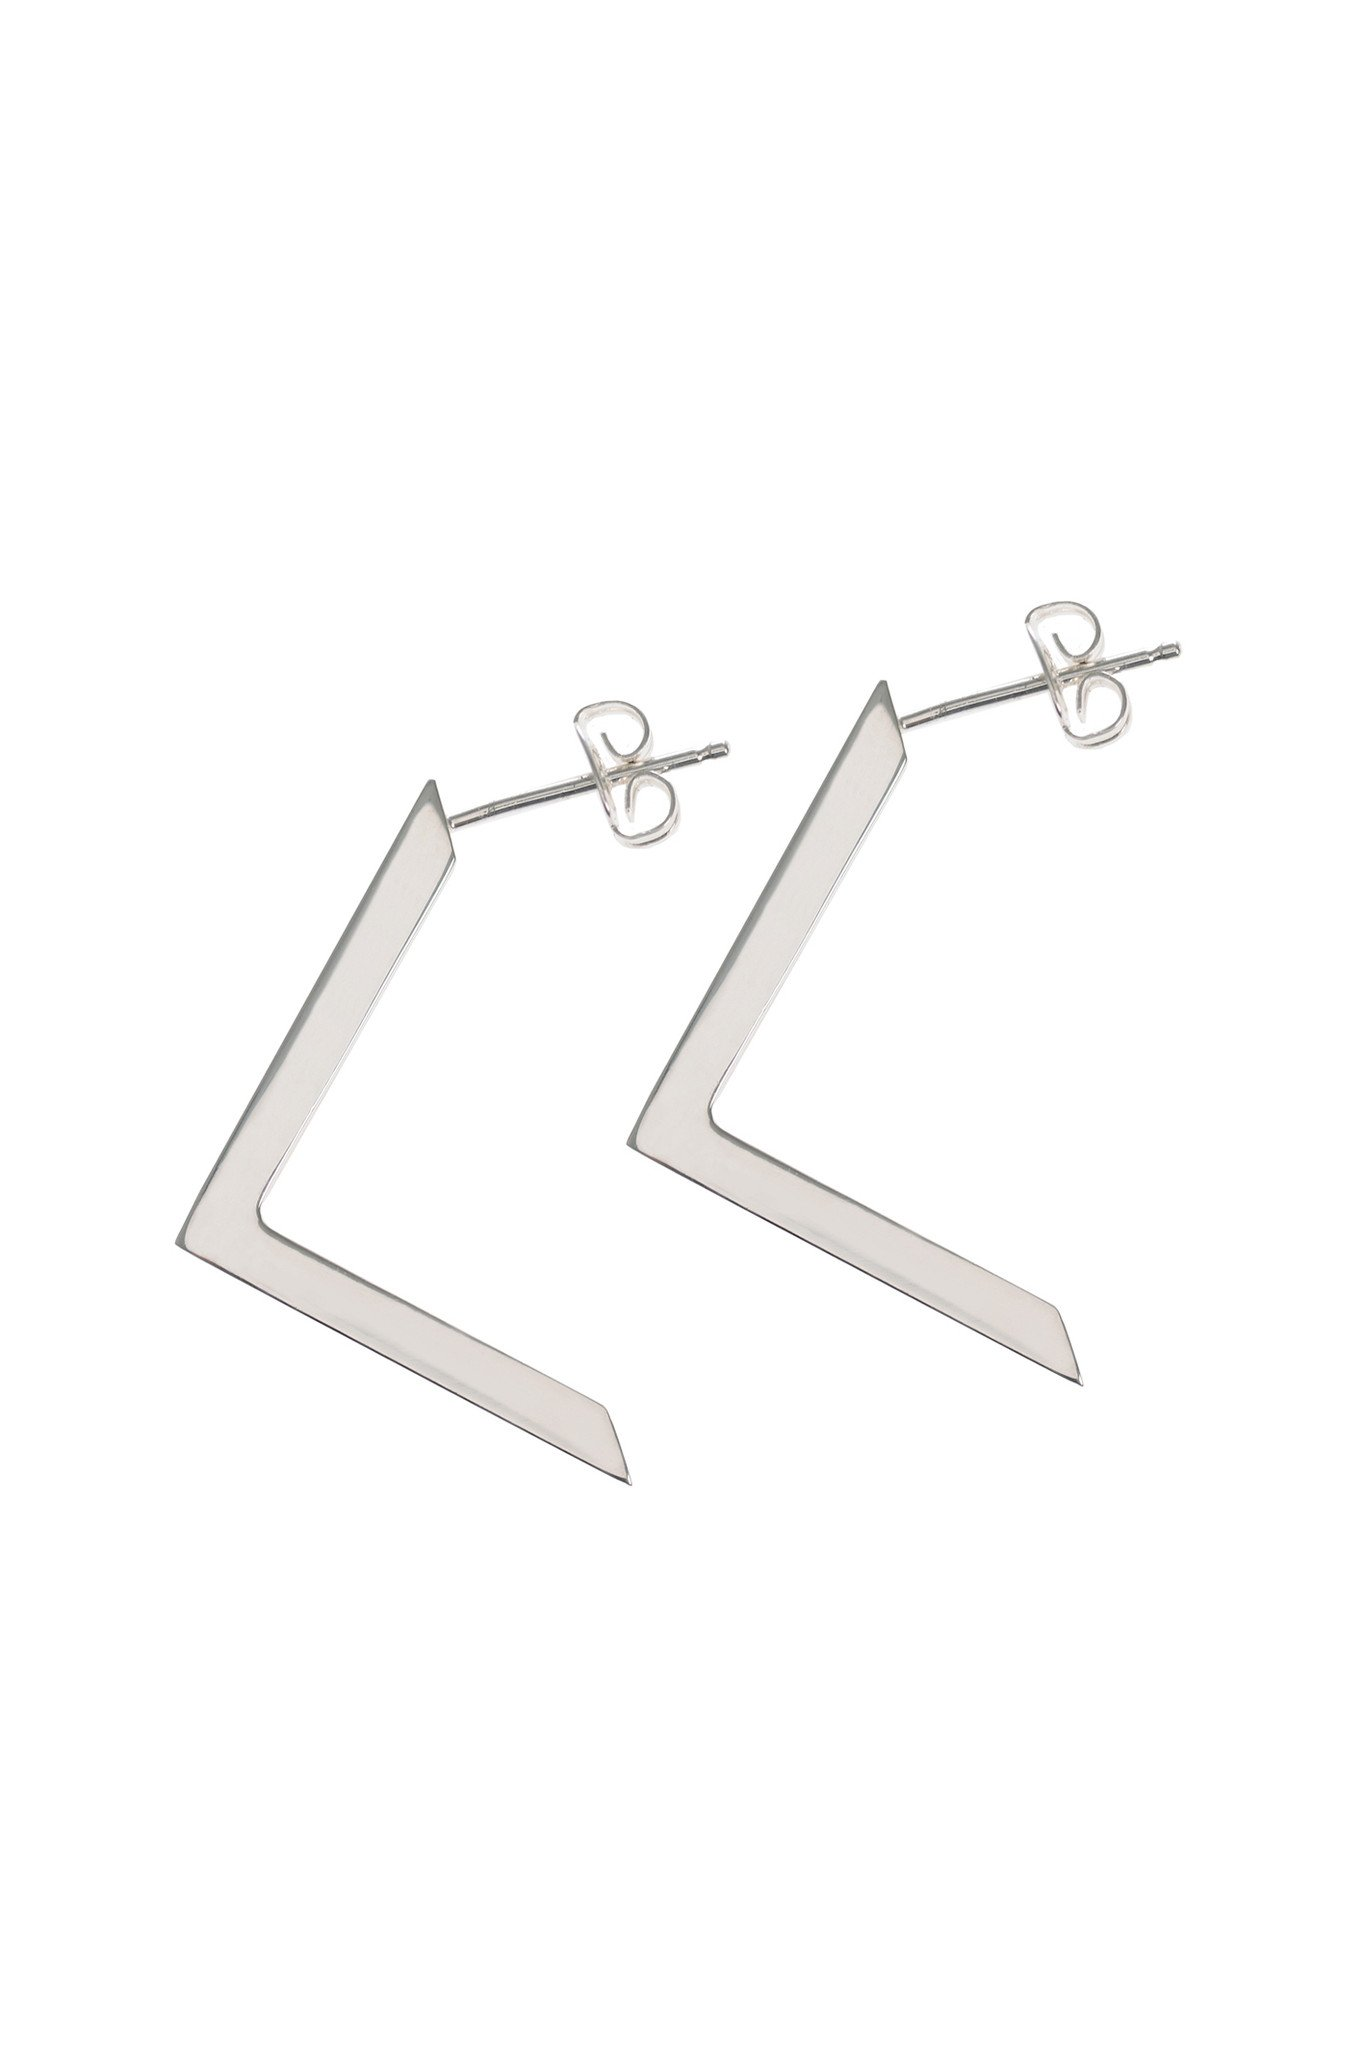 Boomerang, Silver Earrings by Sally Lane Jewellery on curated-crowd.com